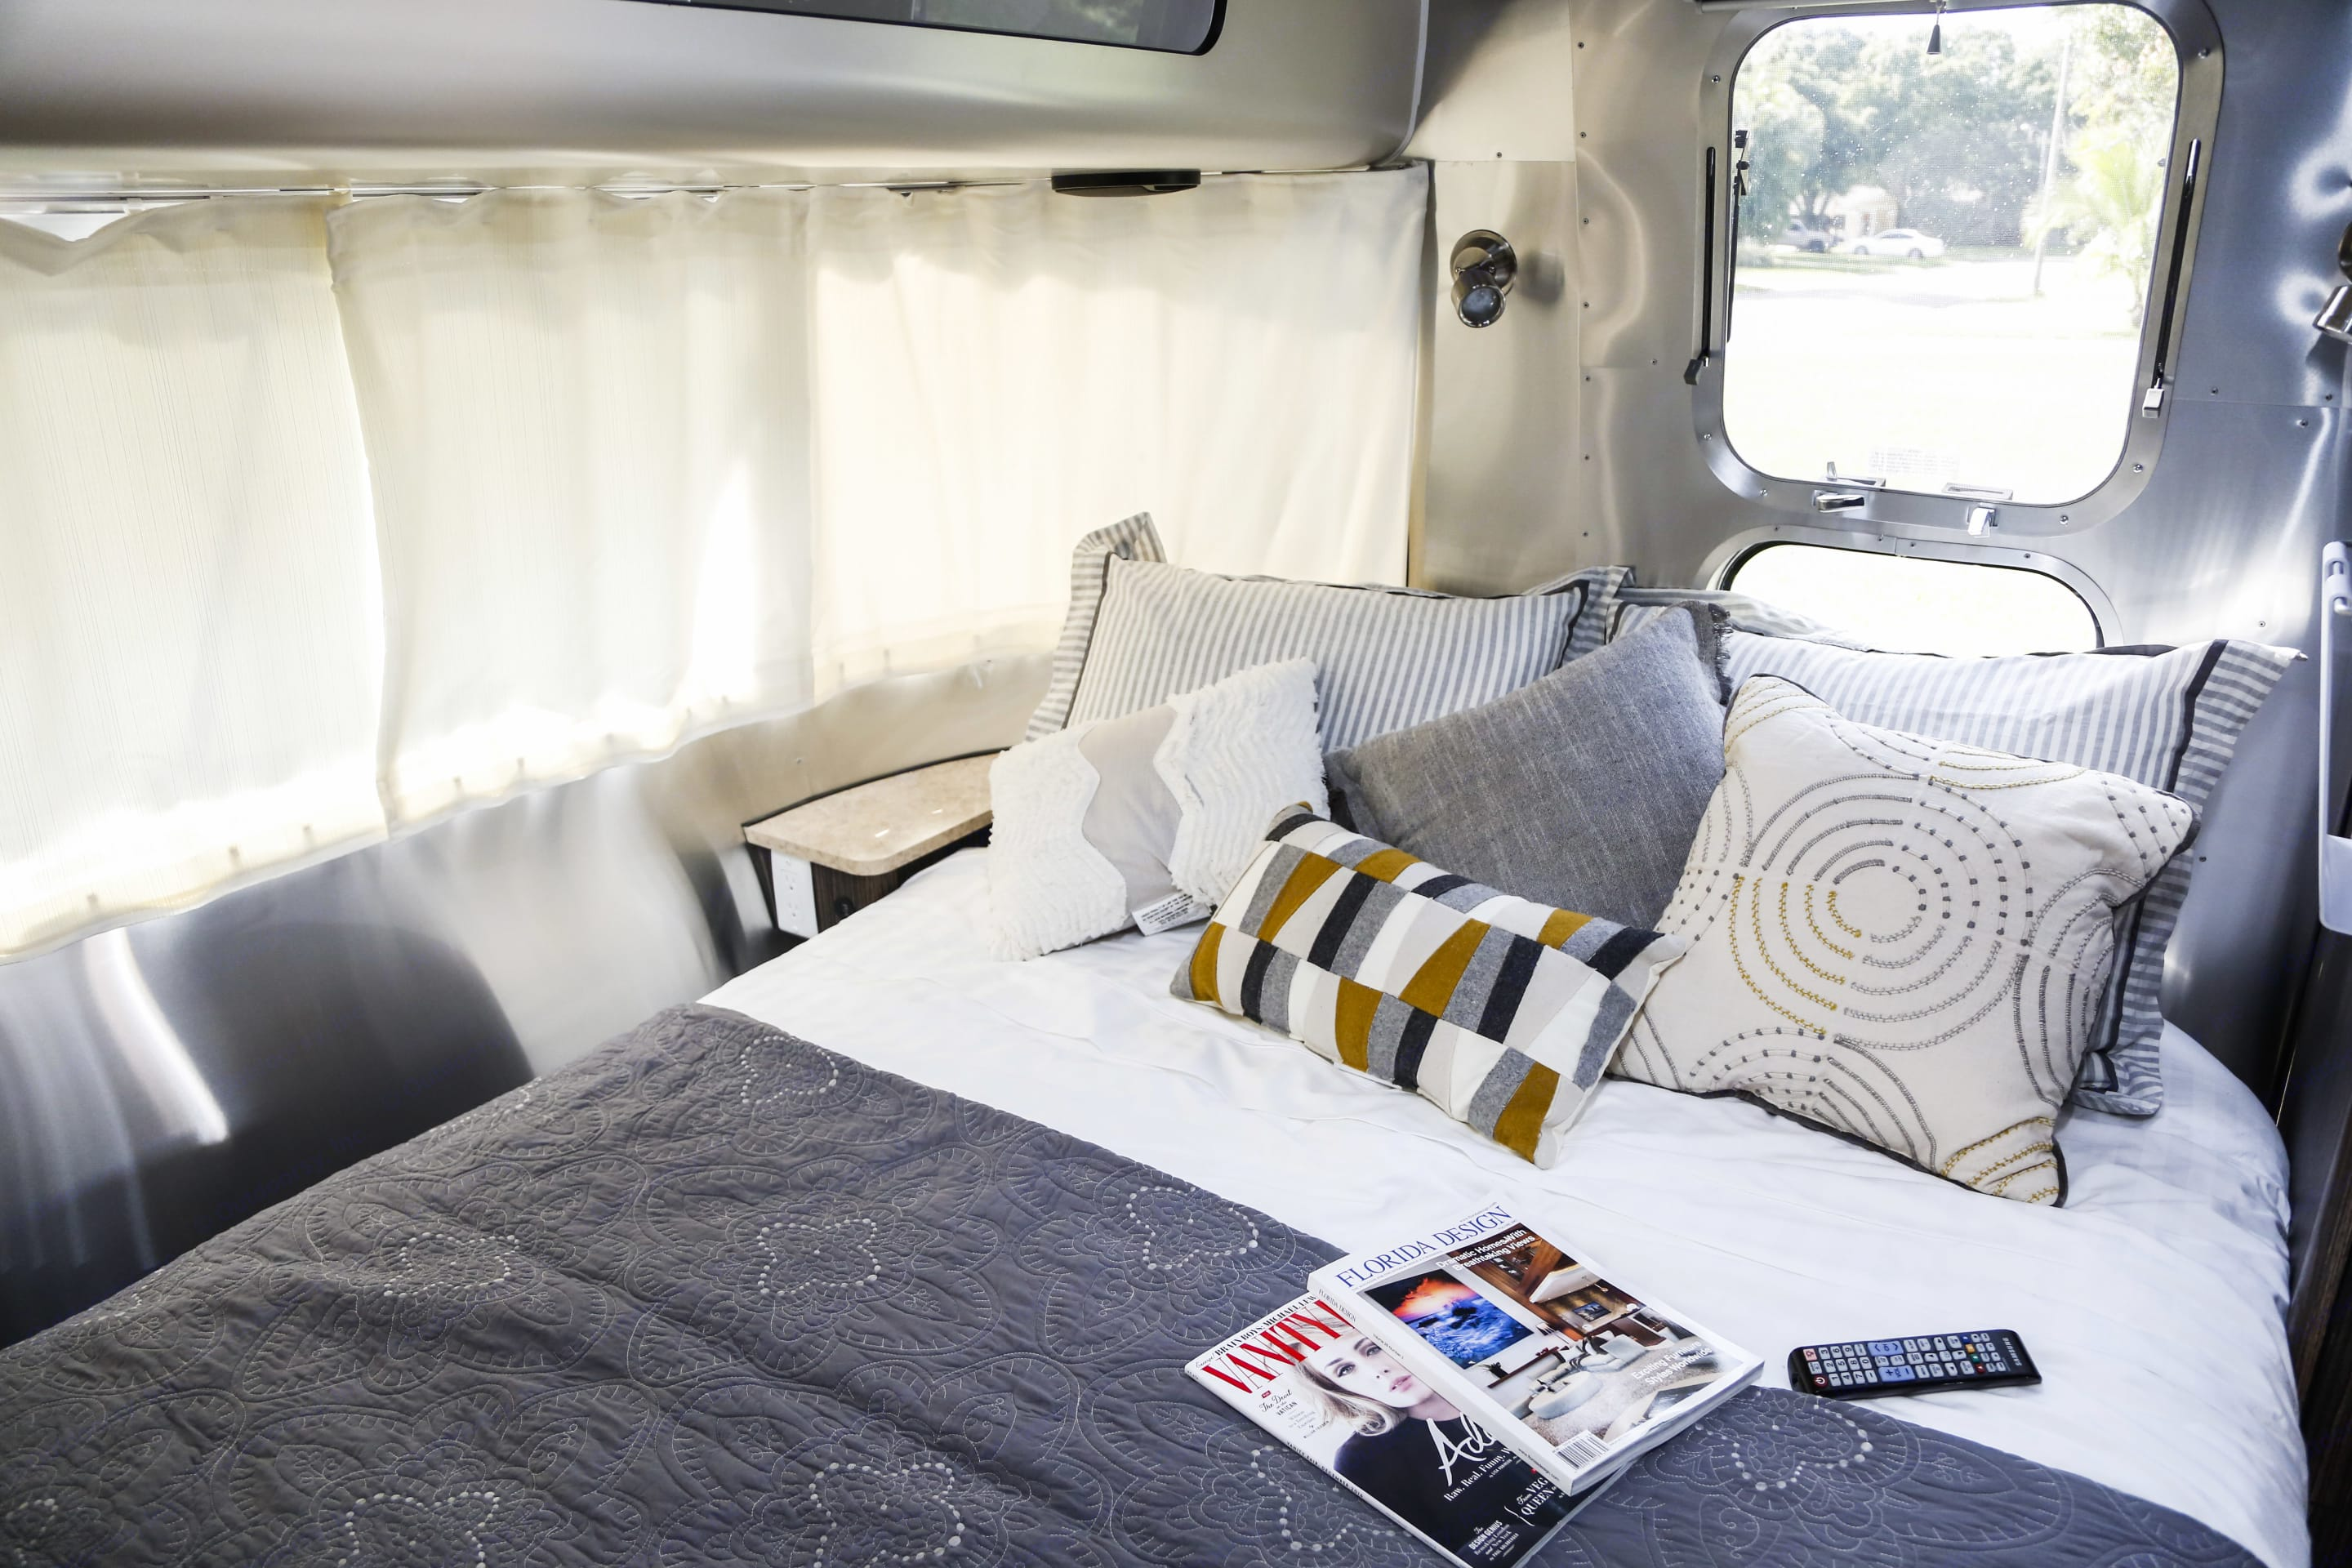 We will provide all the linens you need including sheets, blankets, fluffy pillows and bath towels.. Airstream International 2016